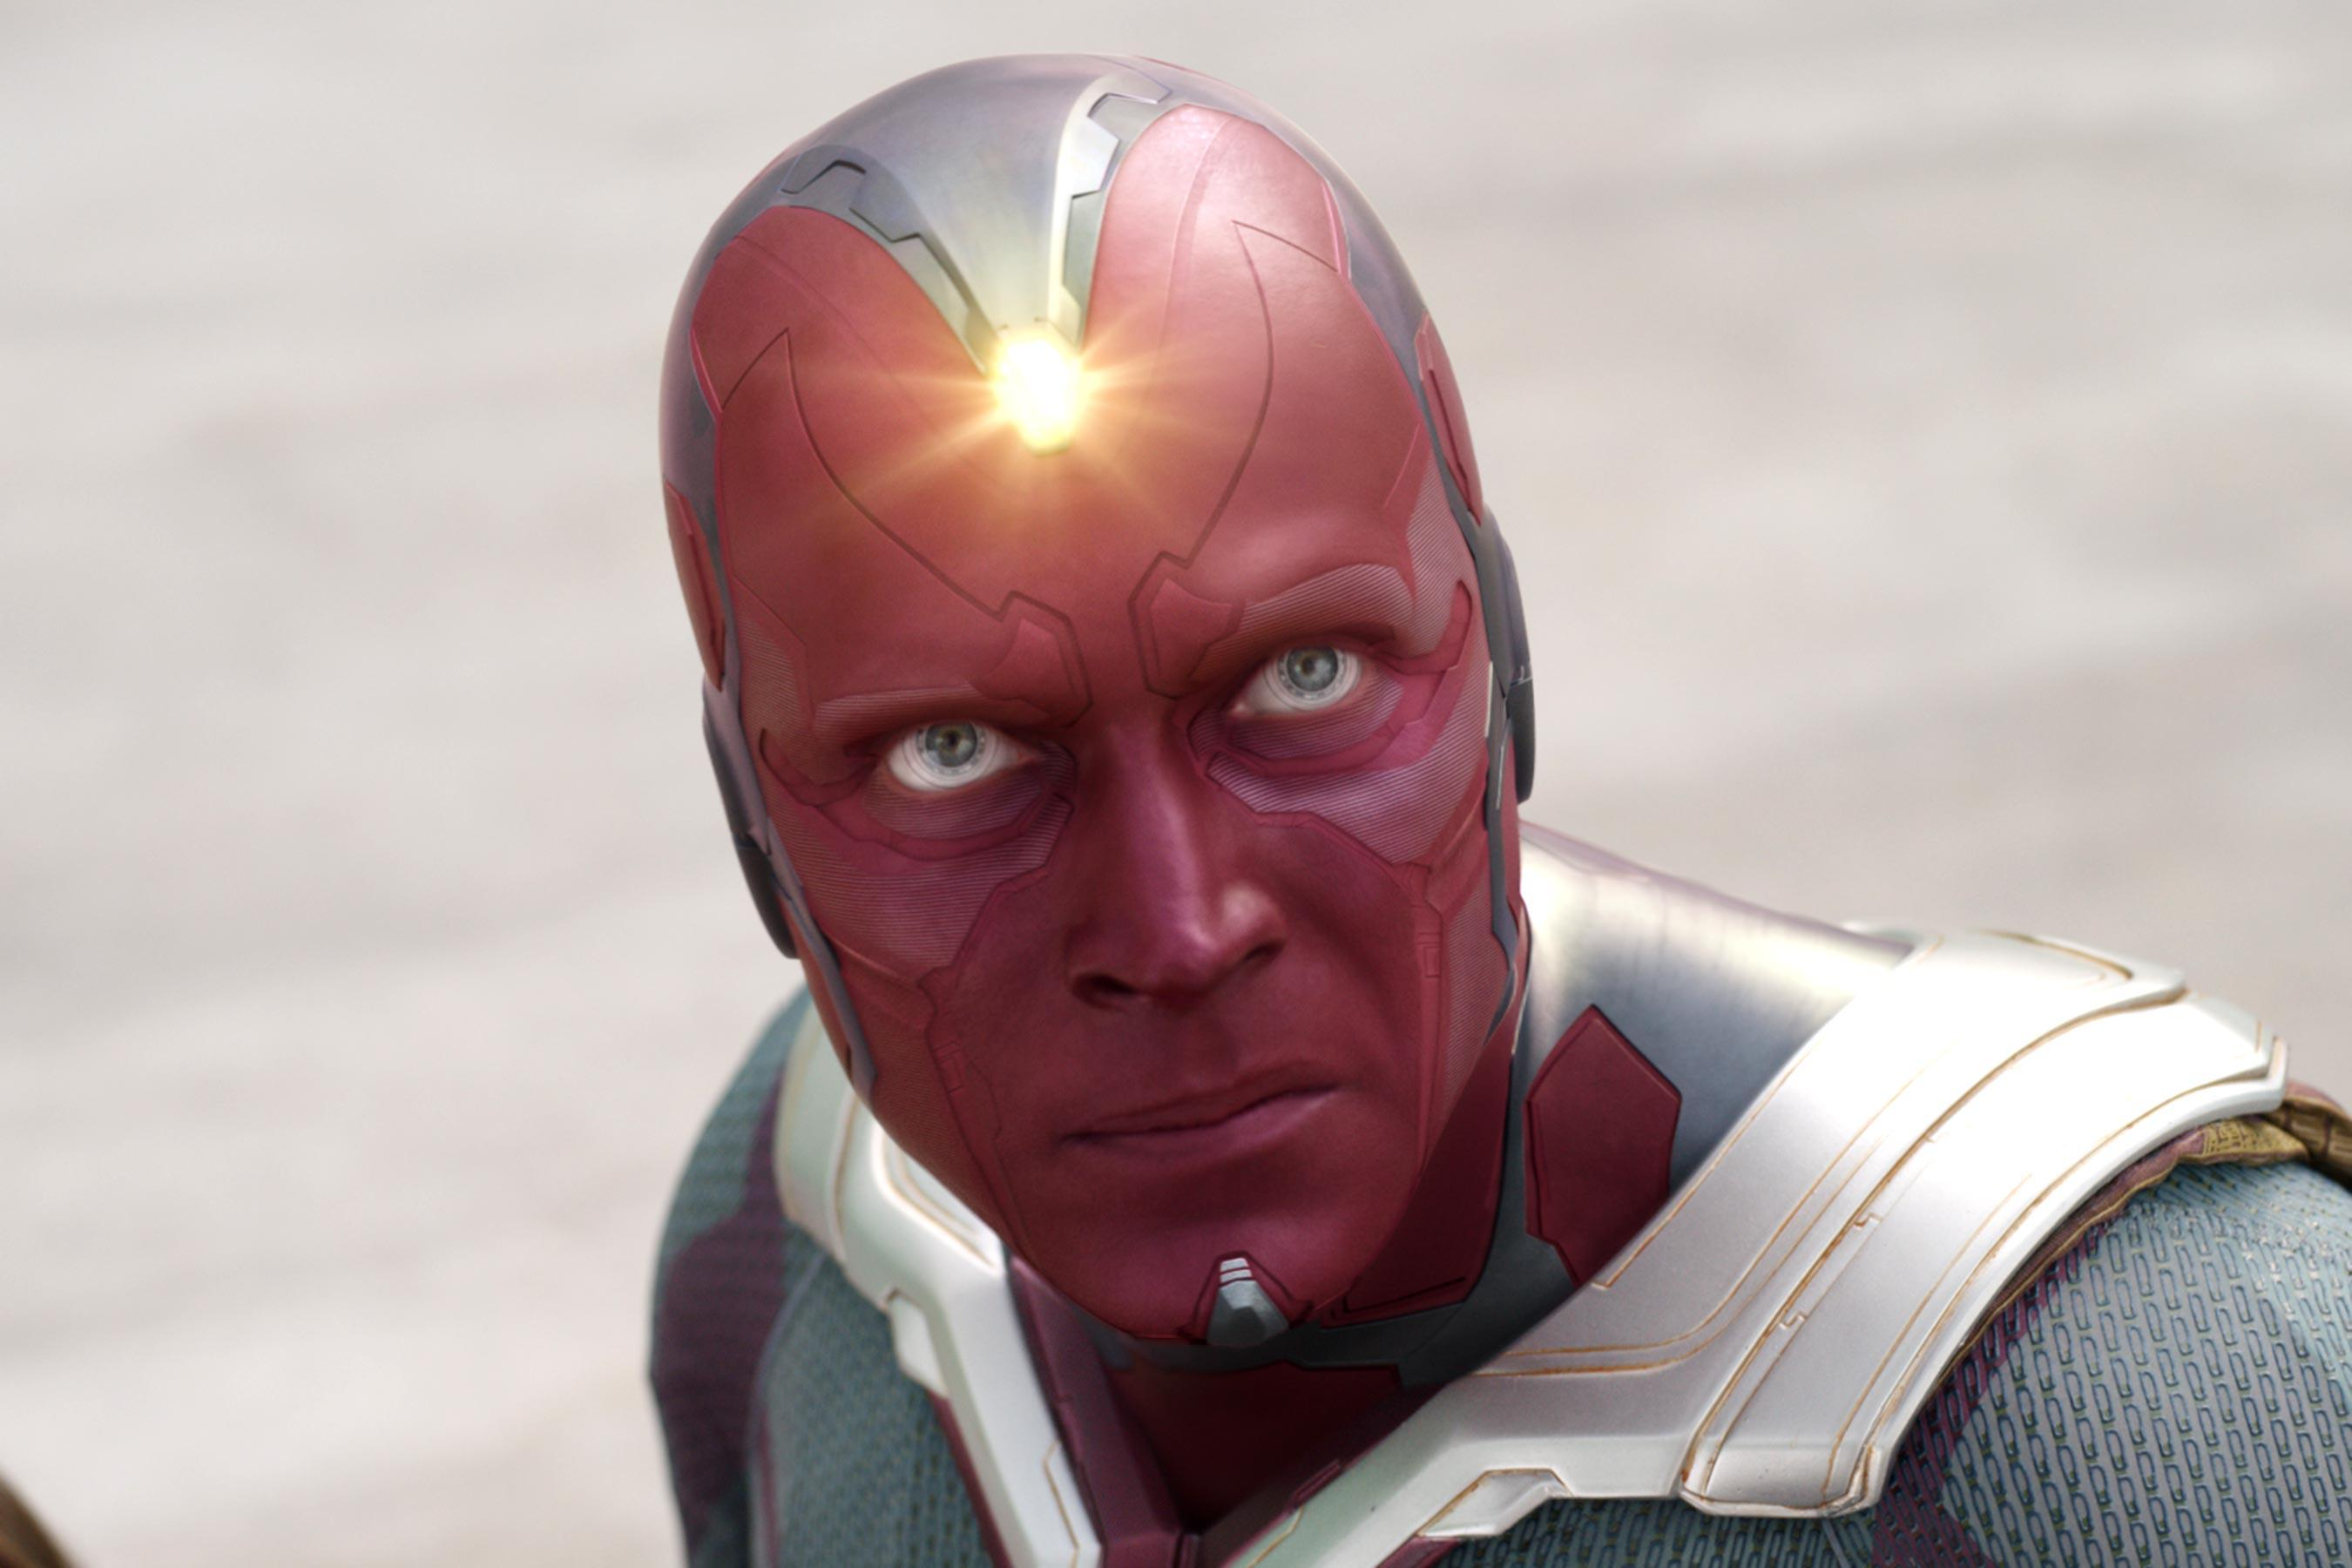 Technically created as a result of Ultron's actions, Vision ends up taking out the final Ultron drone in that showdown. And after Scarlet telekinetically pushed him hundreds of feet underground, Vision gets the ultimate payback: making her fall in love with him!